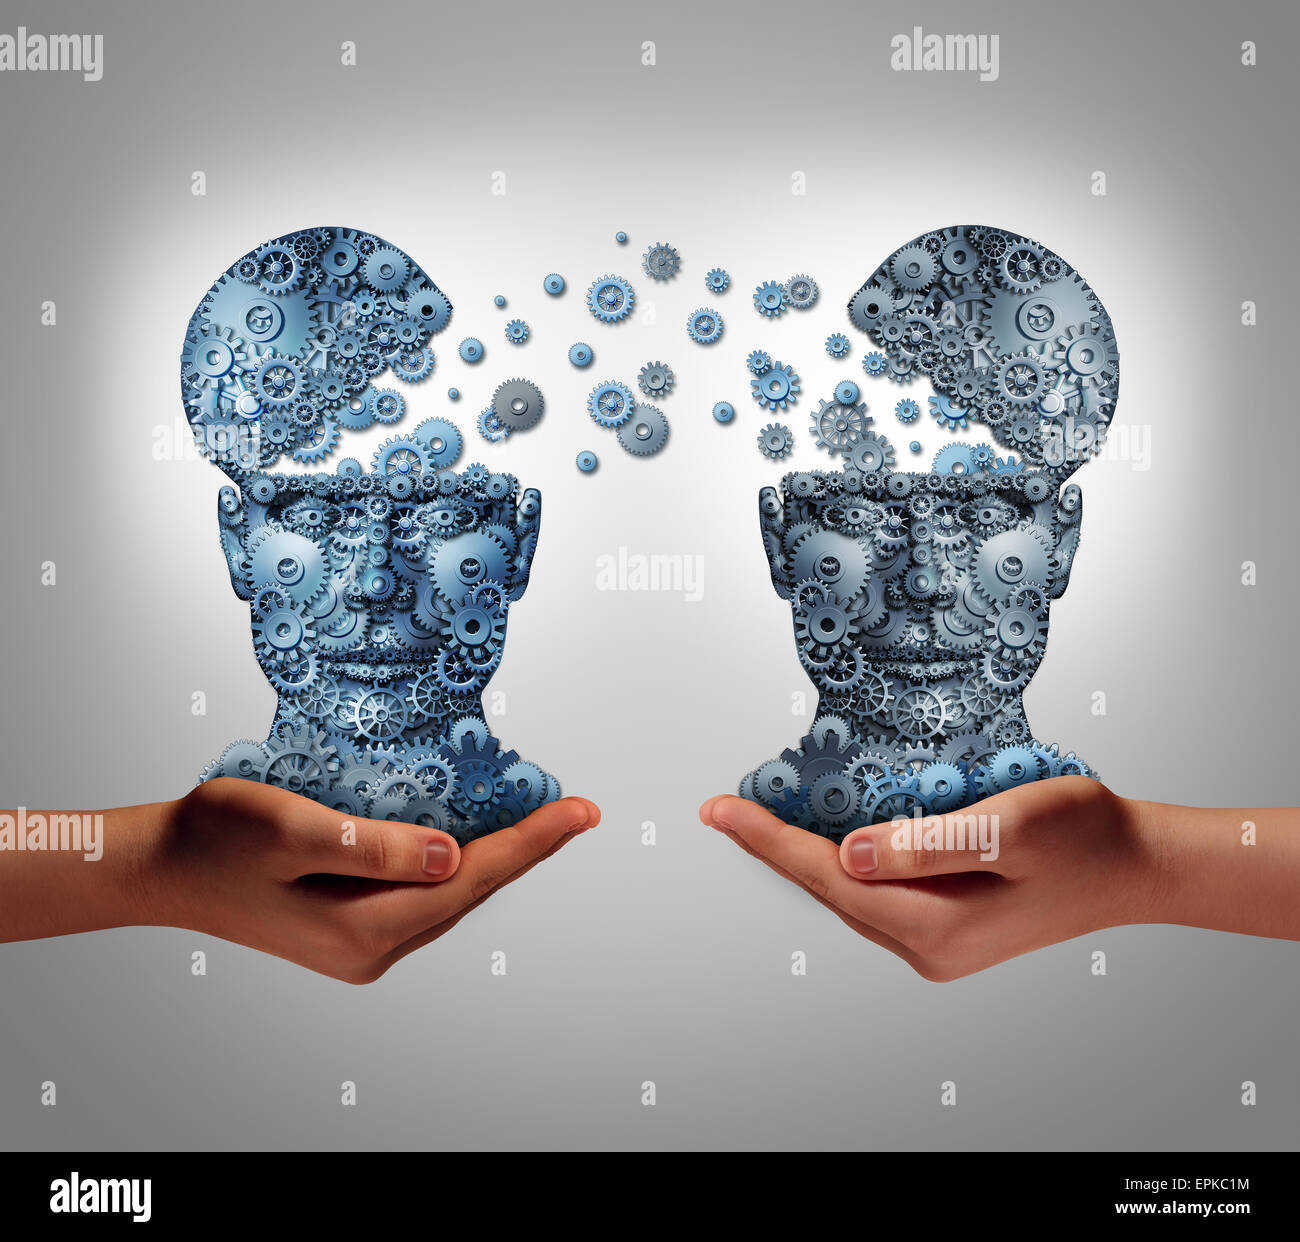 Sharing technology business concept as hands holding two human heads made of gears and cog wheels exchanging information - Stock Image